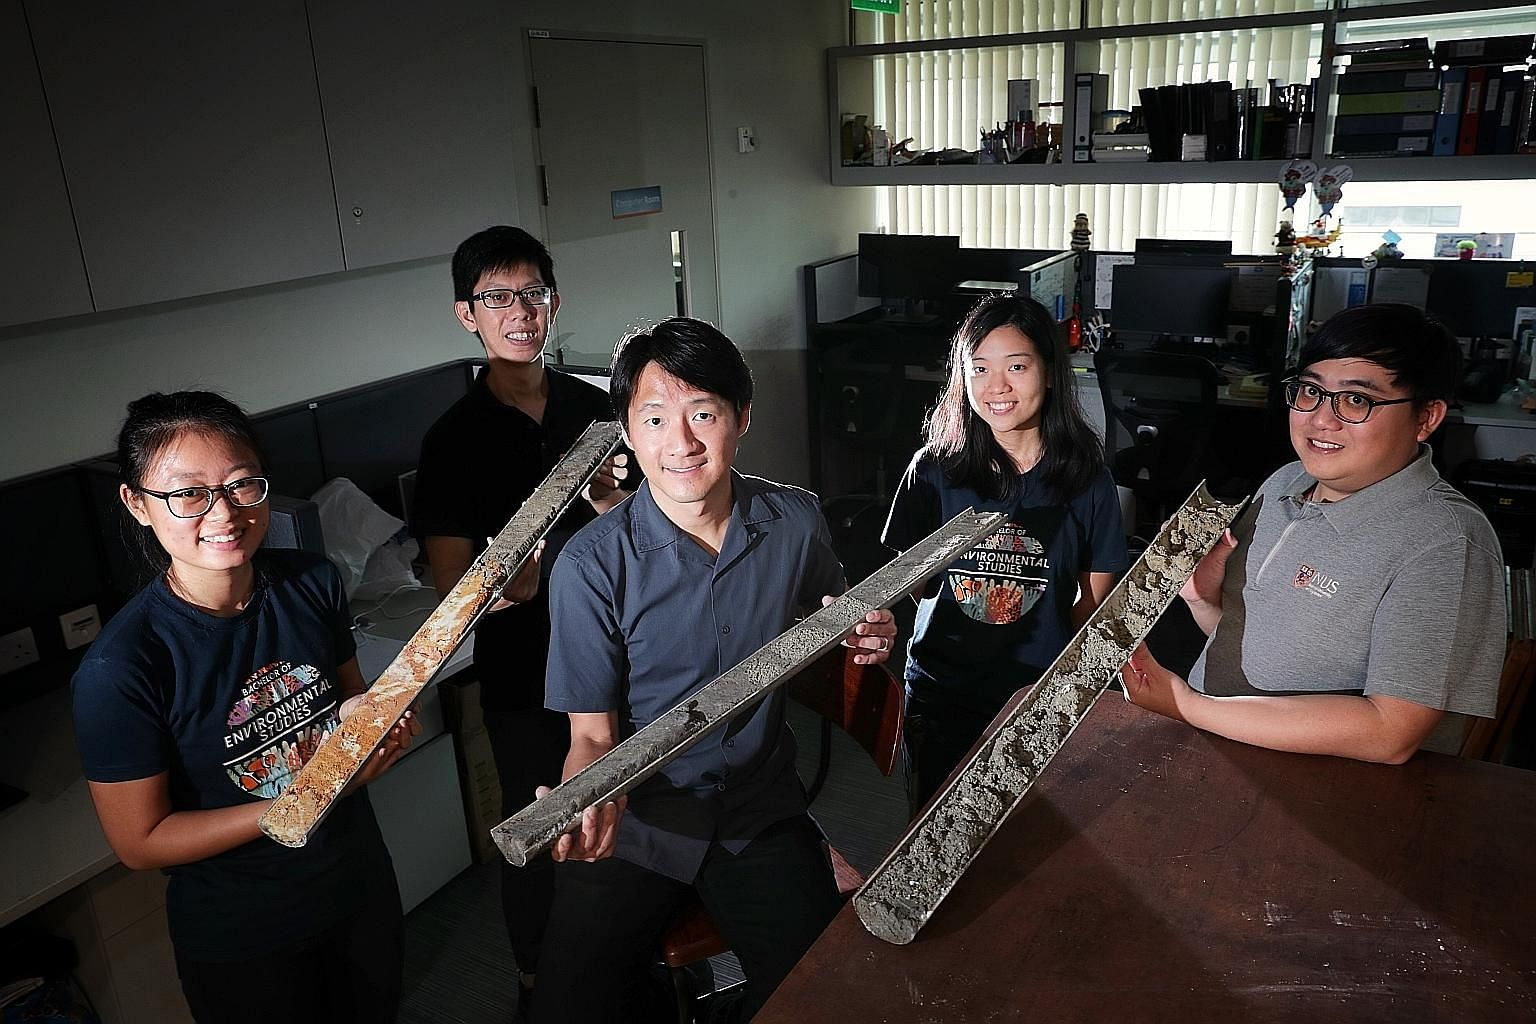 The study's principal investigator Huang Danwei (centre) and core members of his National University of Singapore team - (from left) research assistant Oh Ren Min, 24; PhD student Samuel Chan, 29; undergraduate Choo Min, 23; and research assistant Am